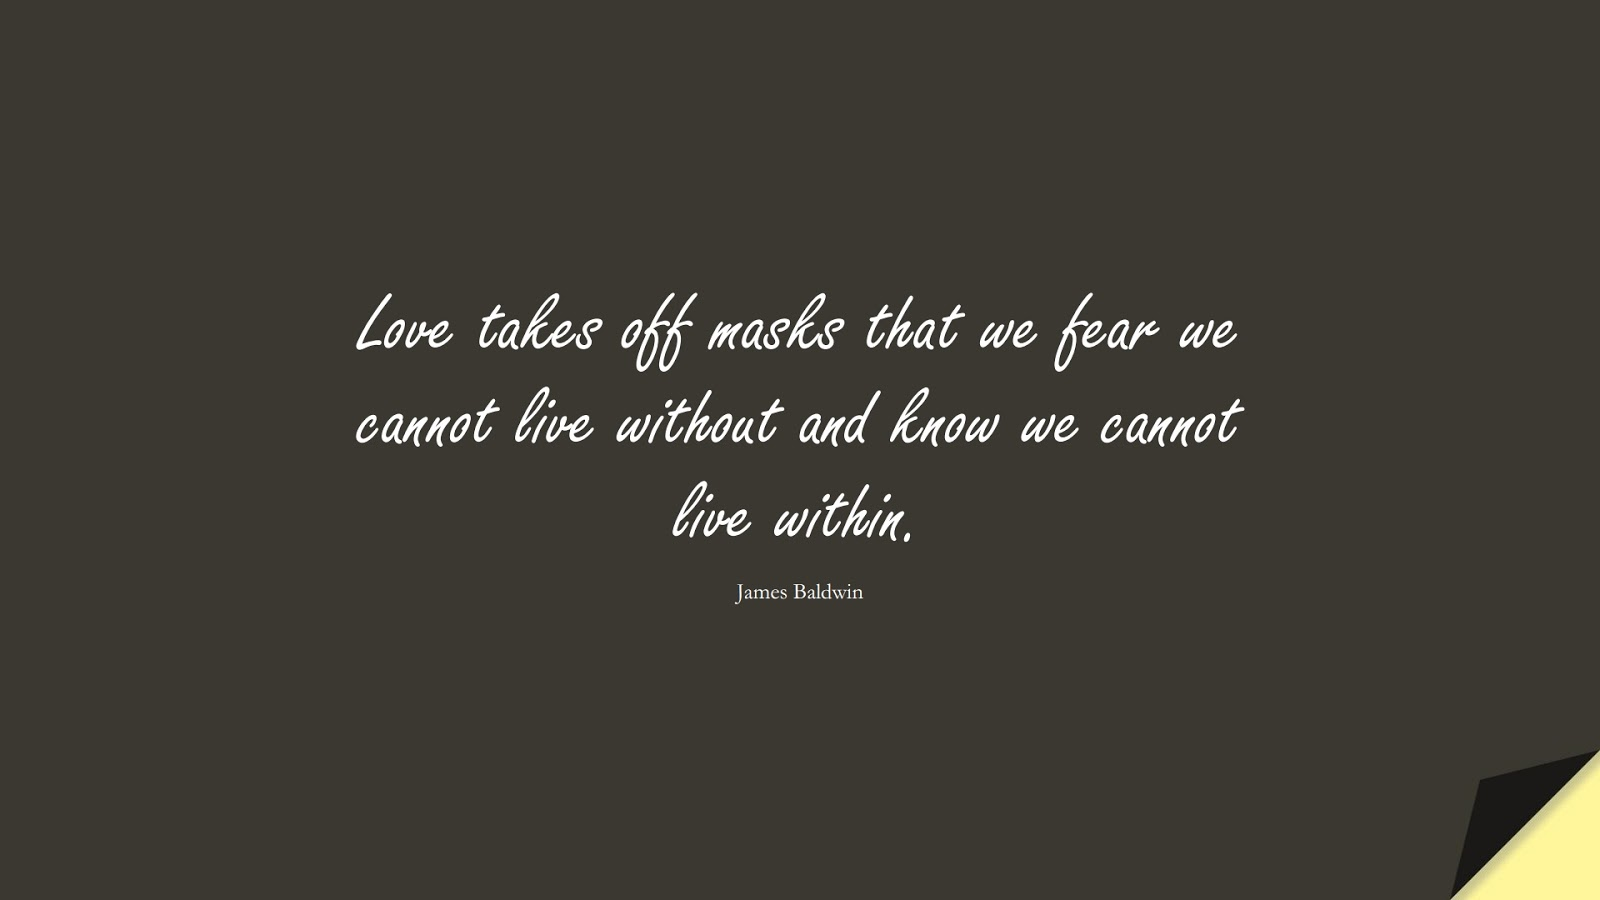 Love takes off masks that we fear we cannot live without and know we cannot live within. (James Baldwin);  #LifeQuotes